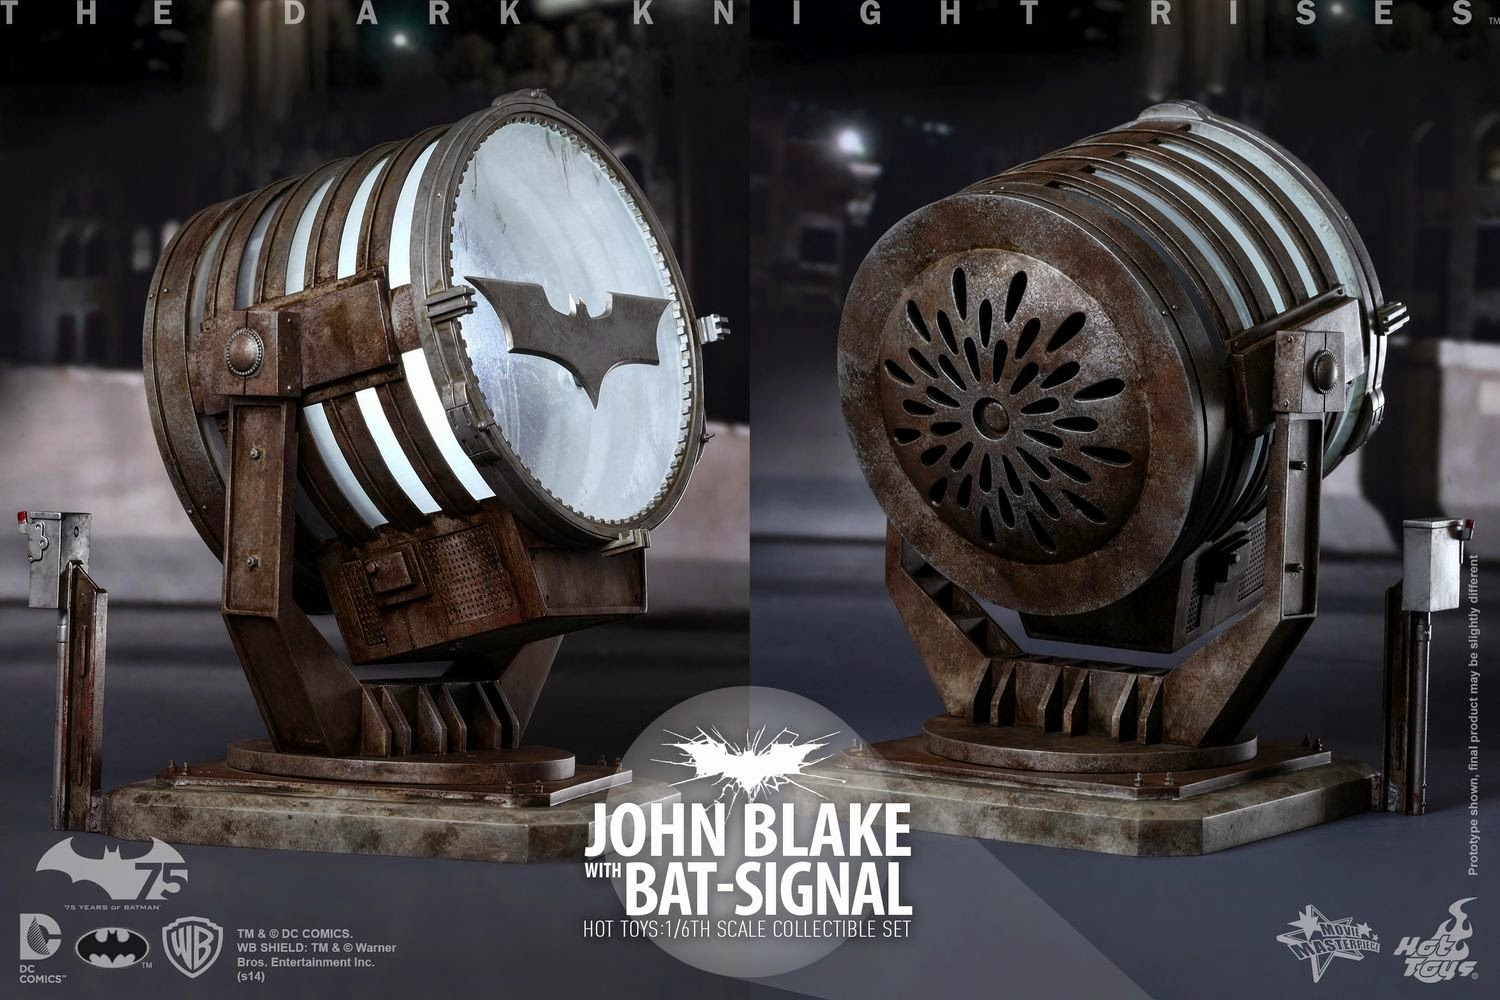 onesixthscalepictures hot toys dark knight rises john blake with bat signal latest product. Black Bedroom Furniture Sets. Home Design Ideas